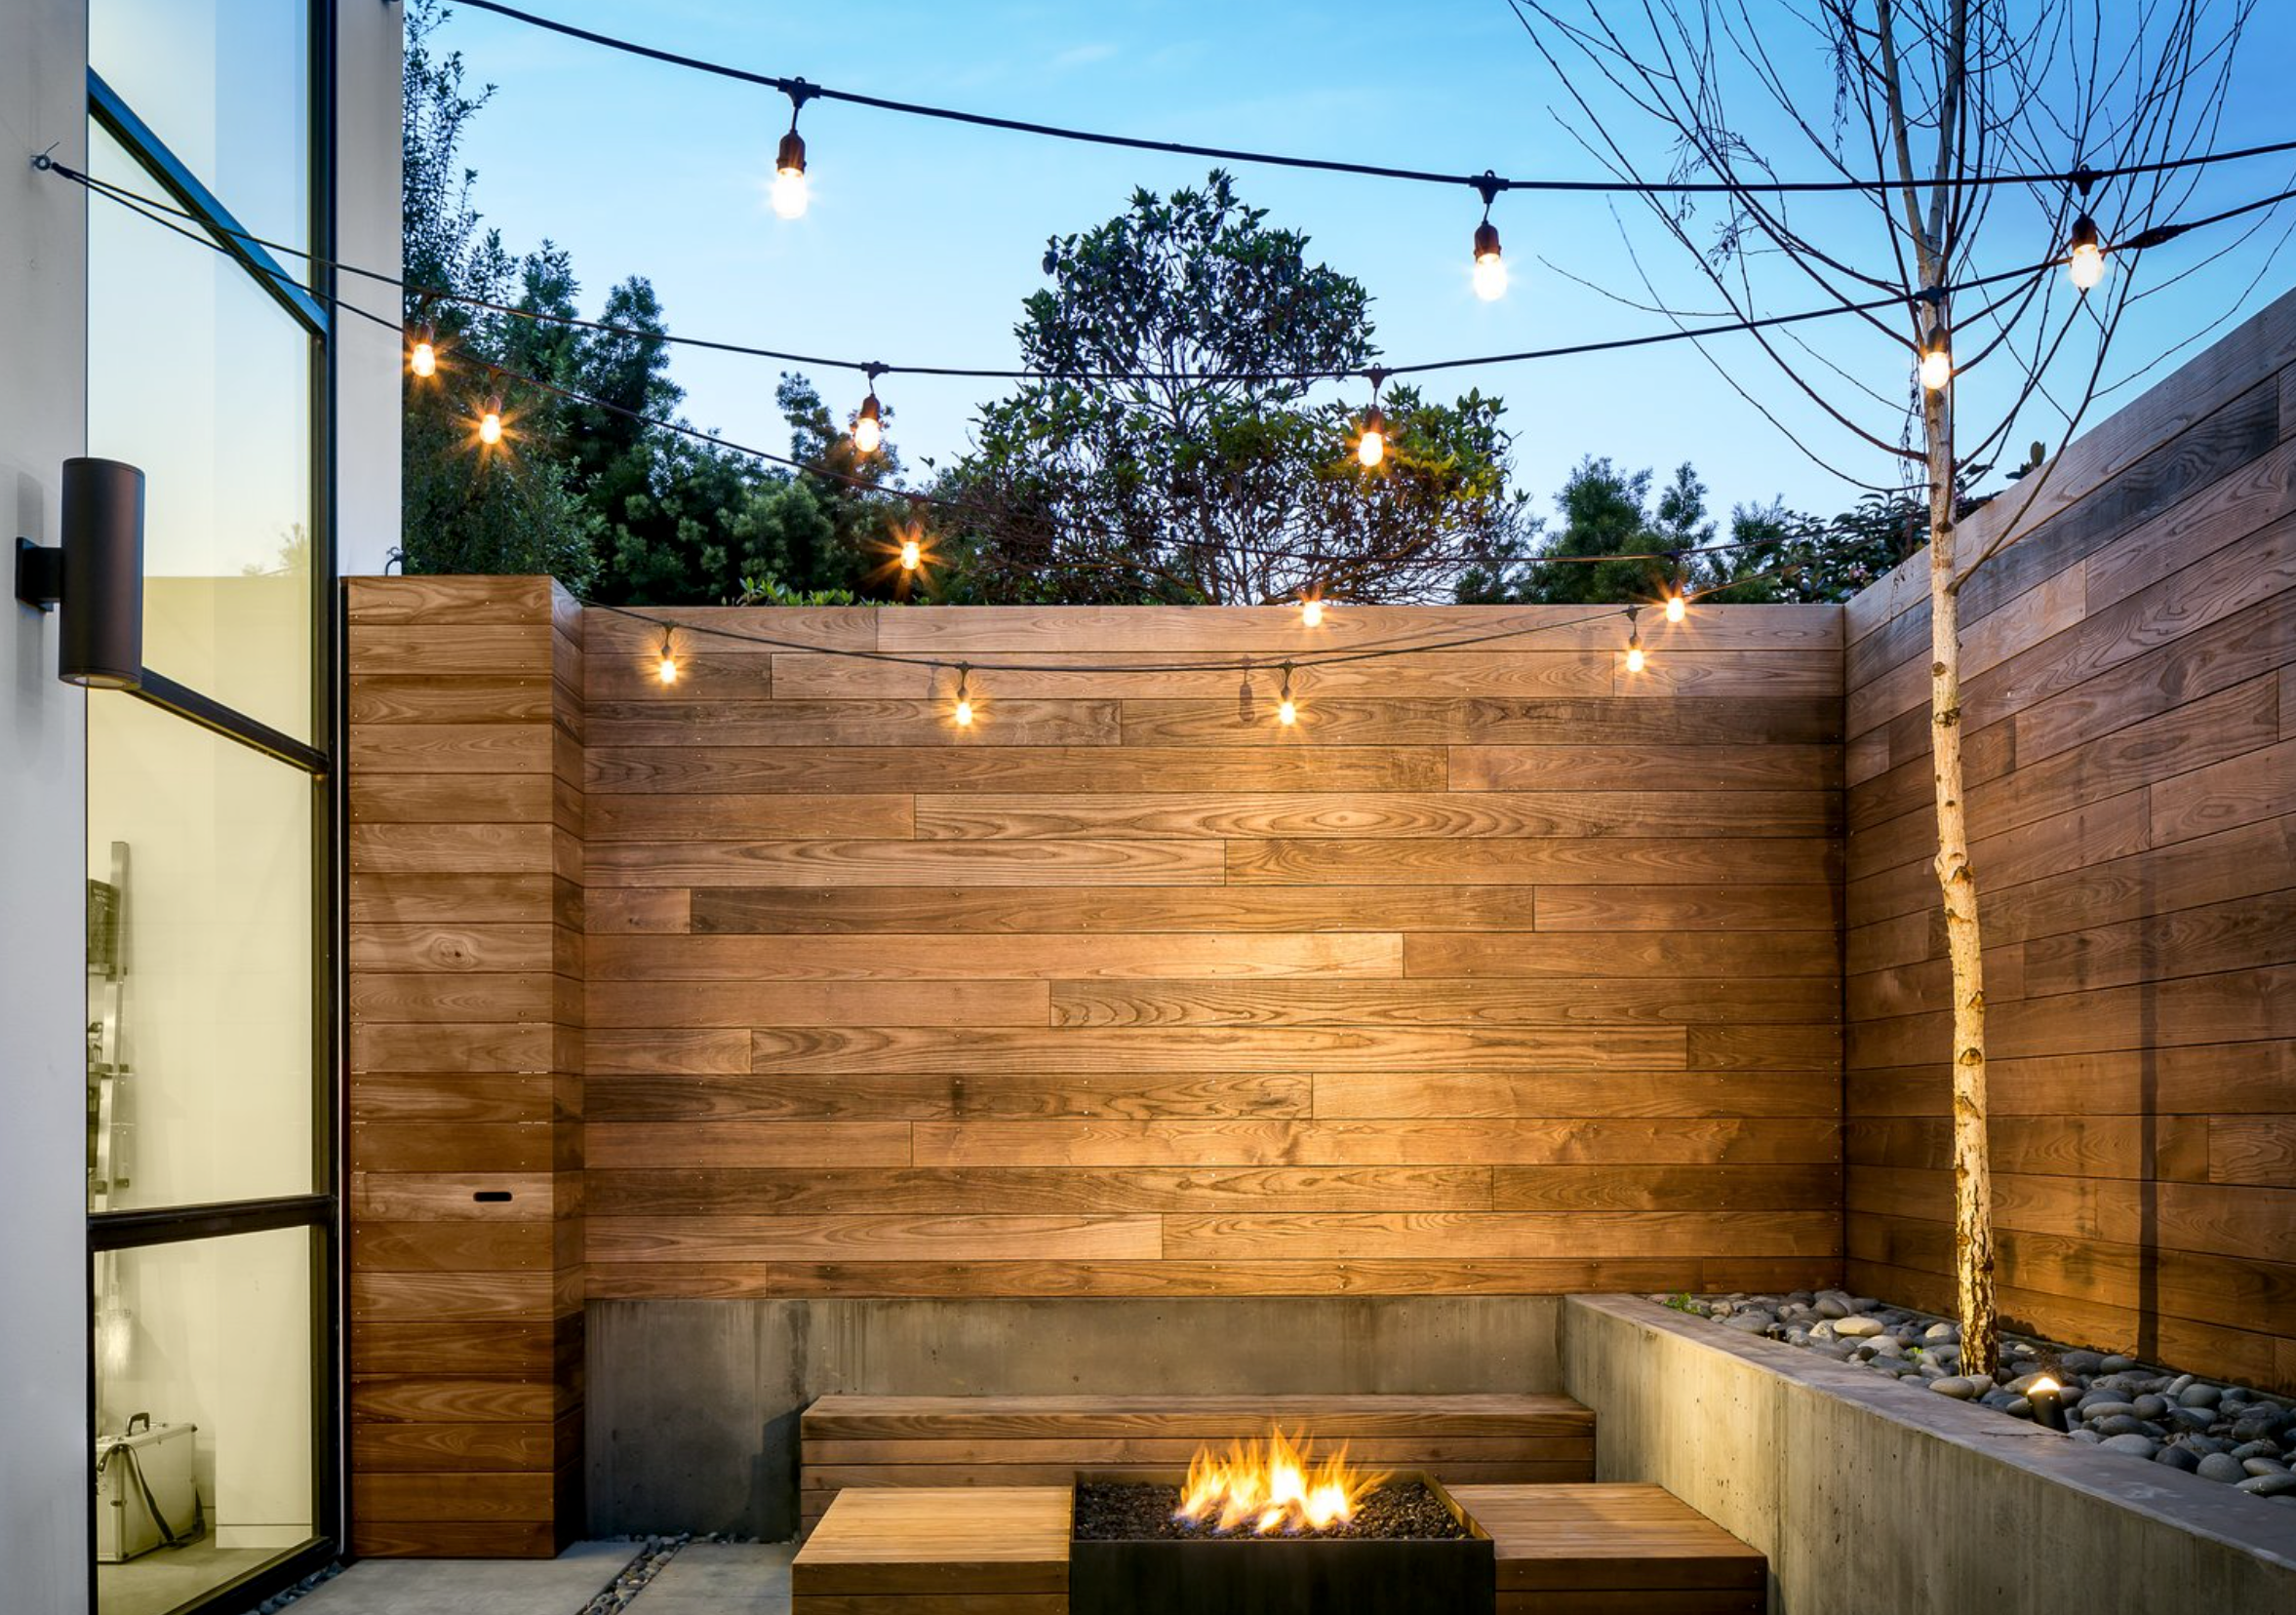 Wall lights on wooden fence with overhead bulbs